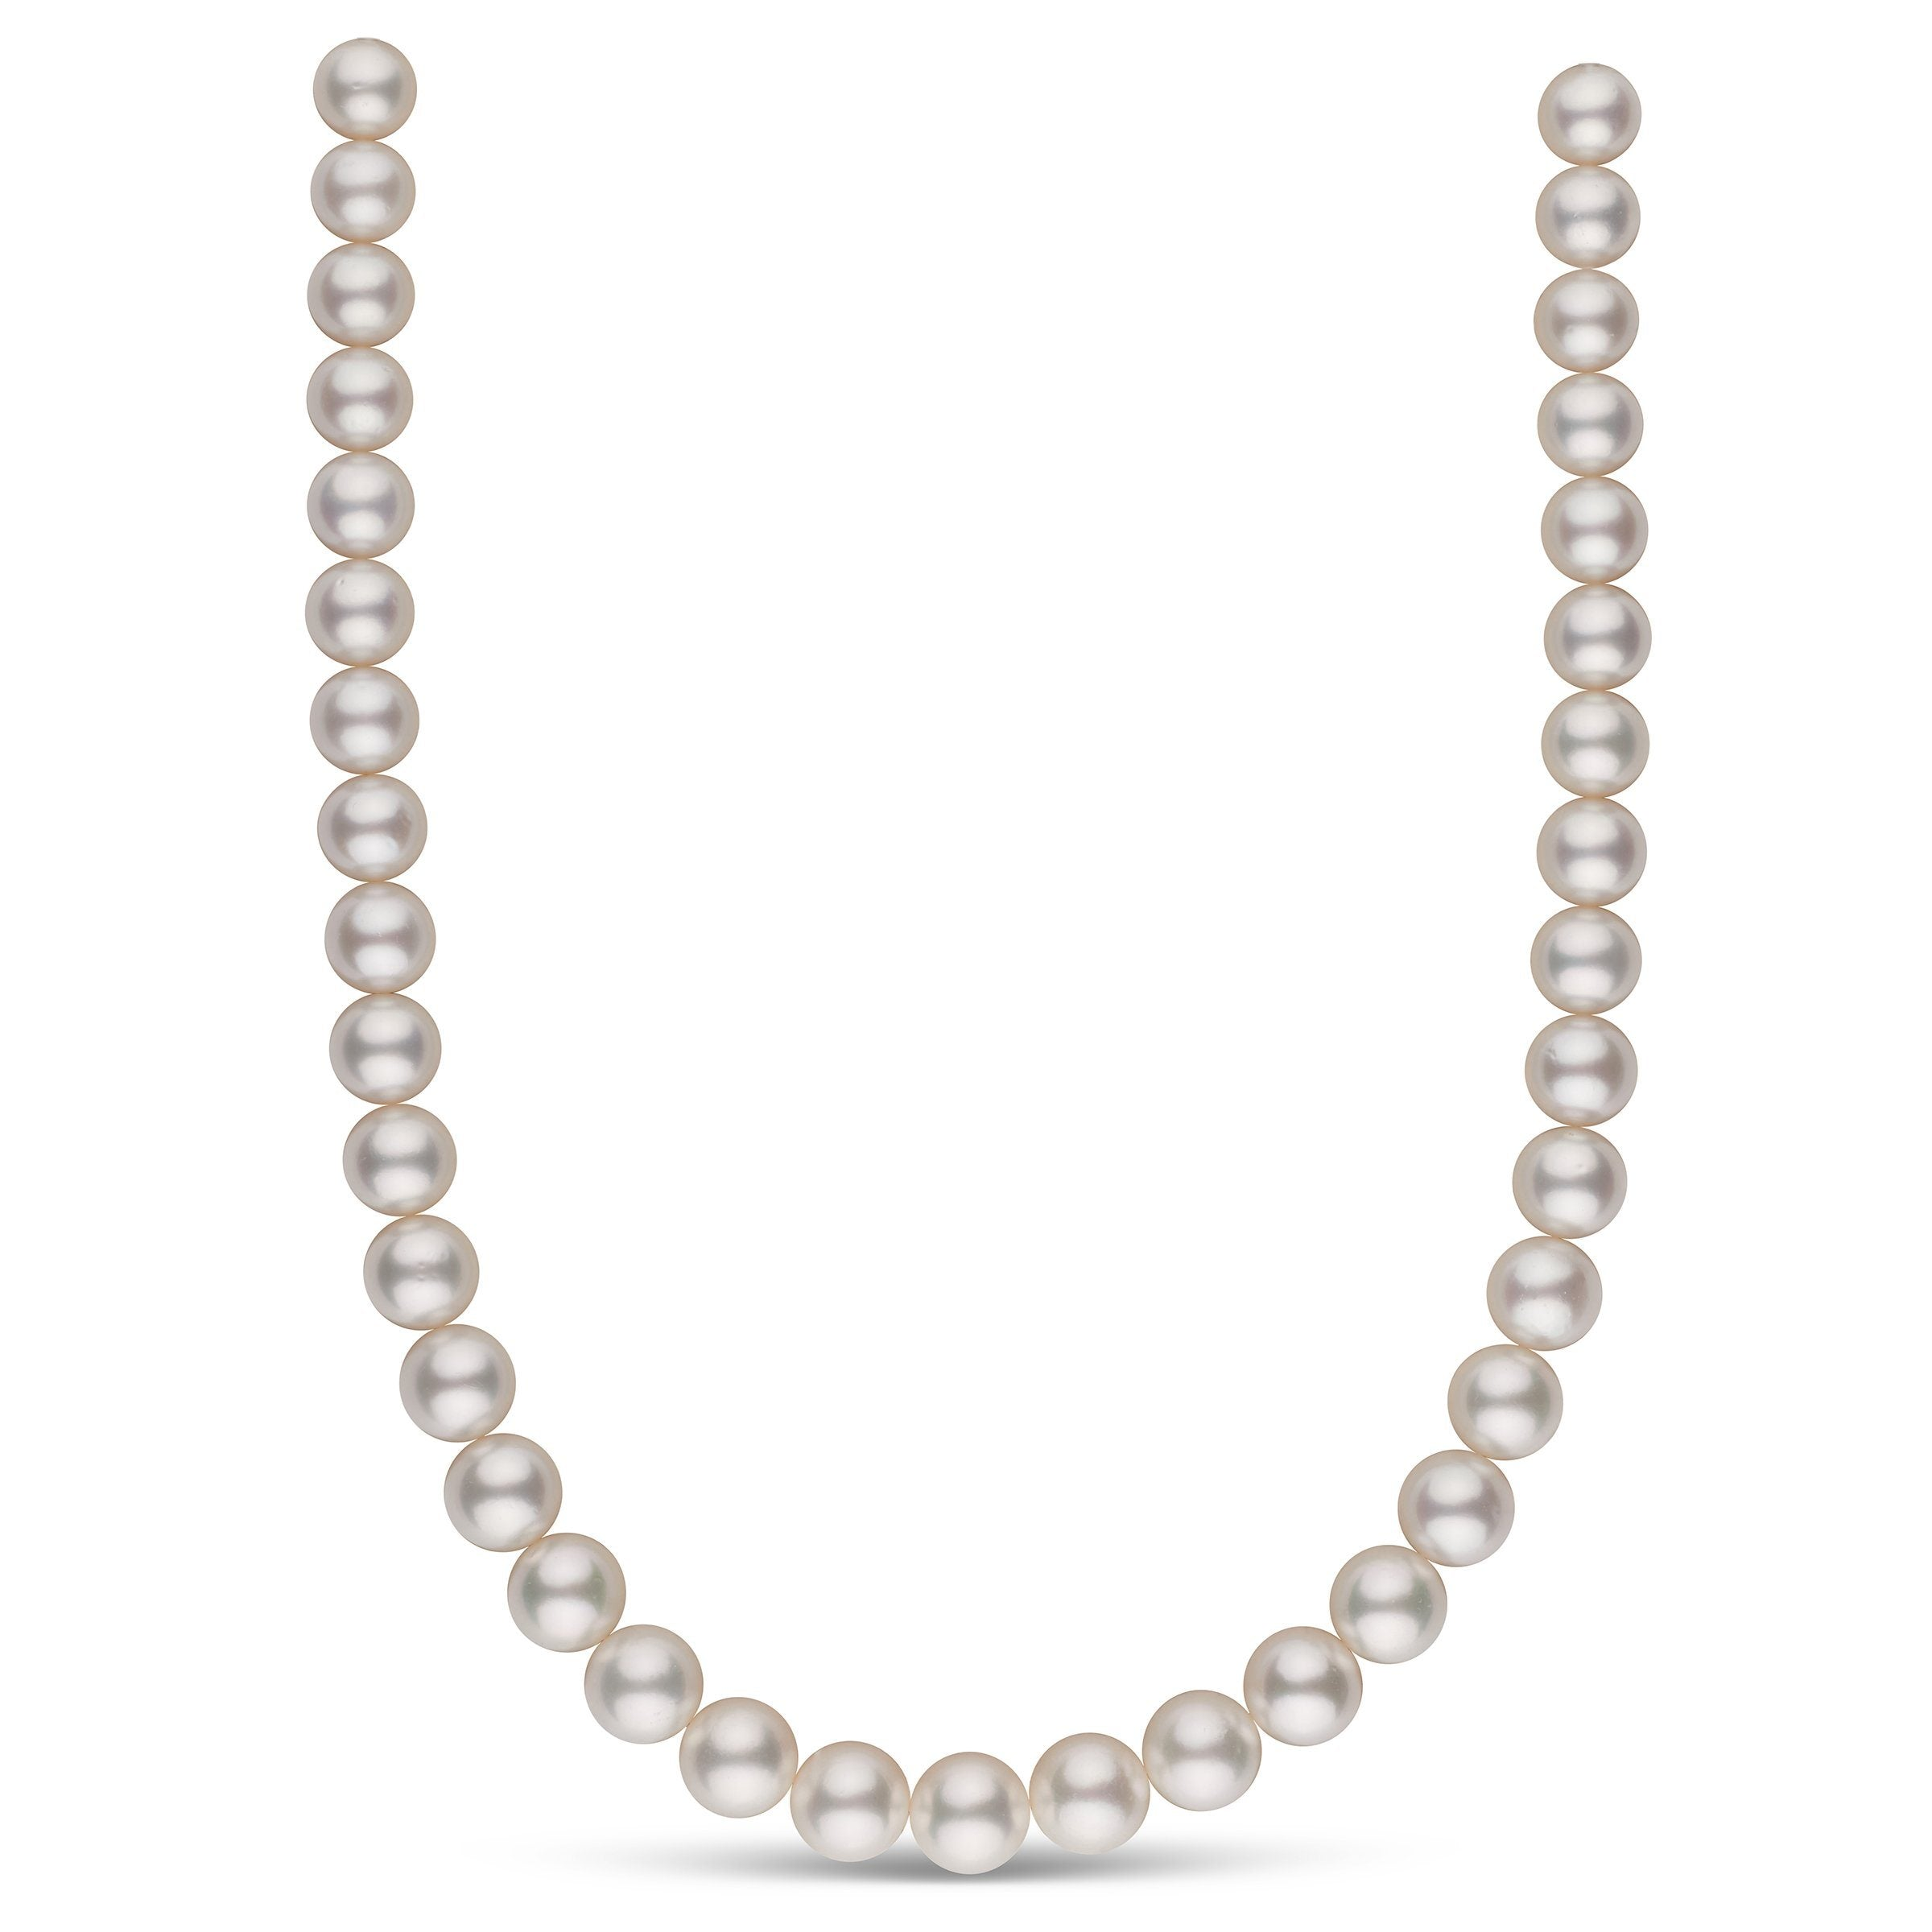 10.0-11.8 mm AA+/AAA White South Sea Round Pearl Necklace